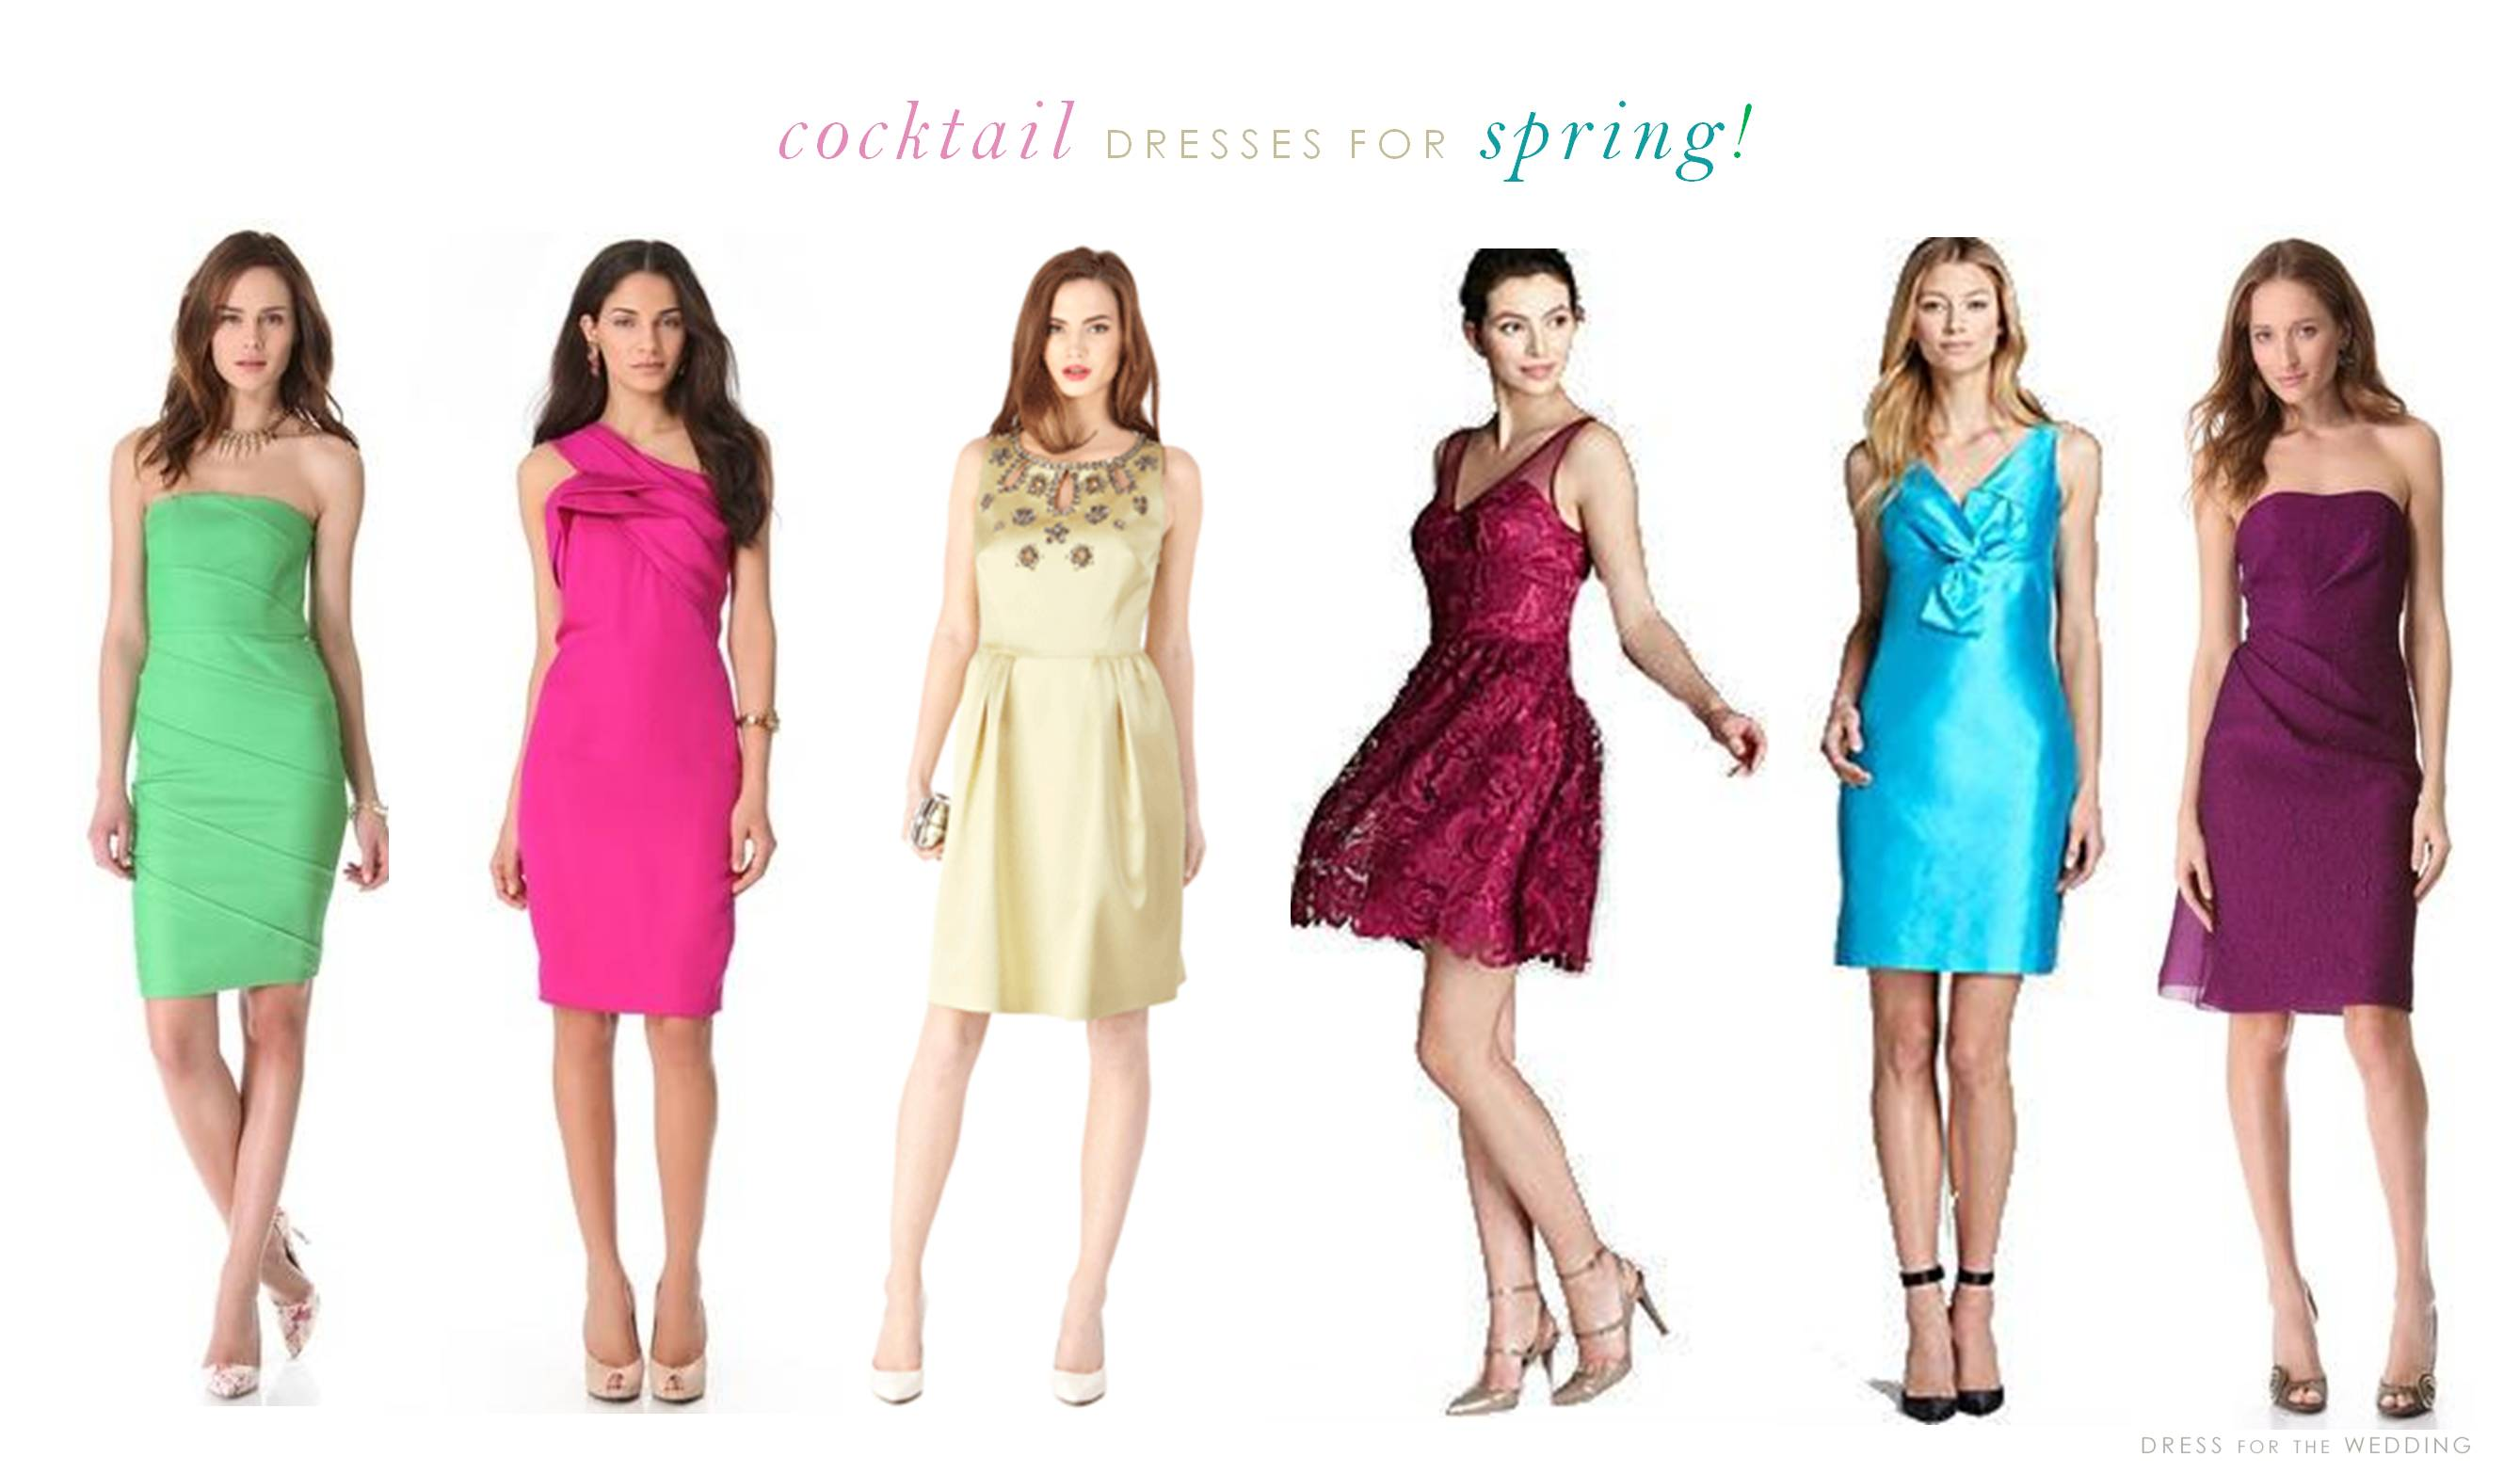 Cocktail dresses archives at dress for the wedding for Dress for a spring wedding